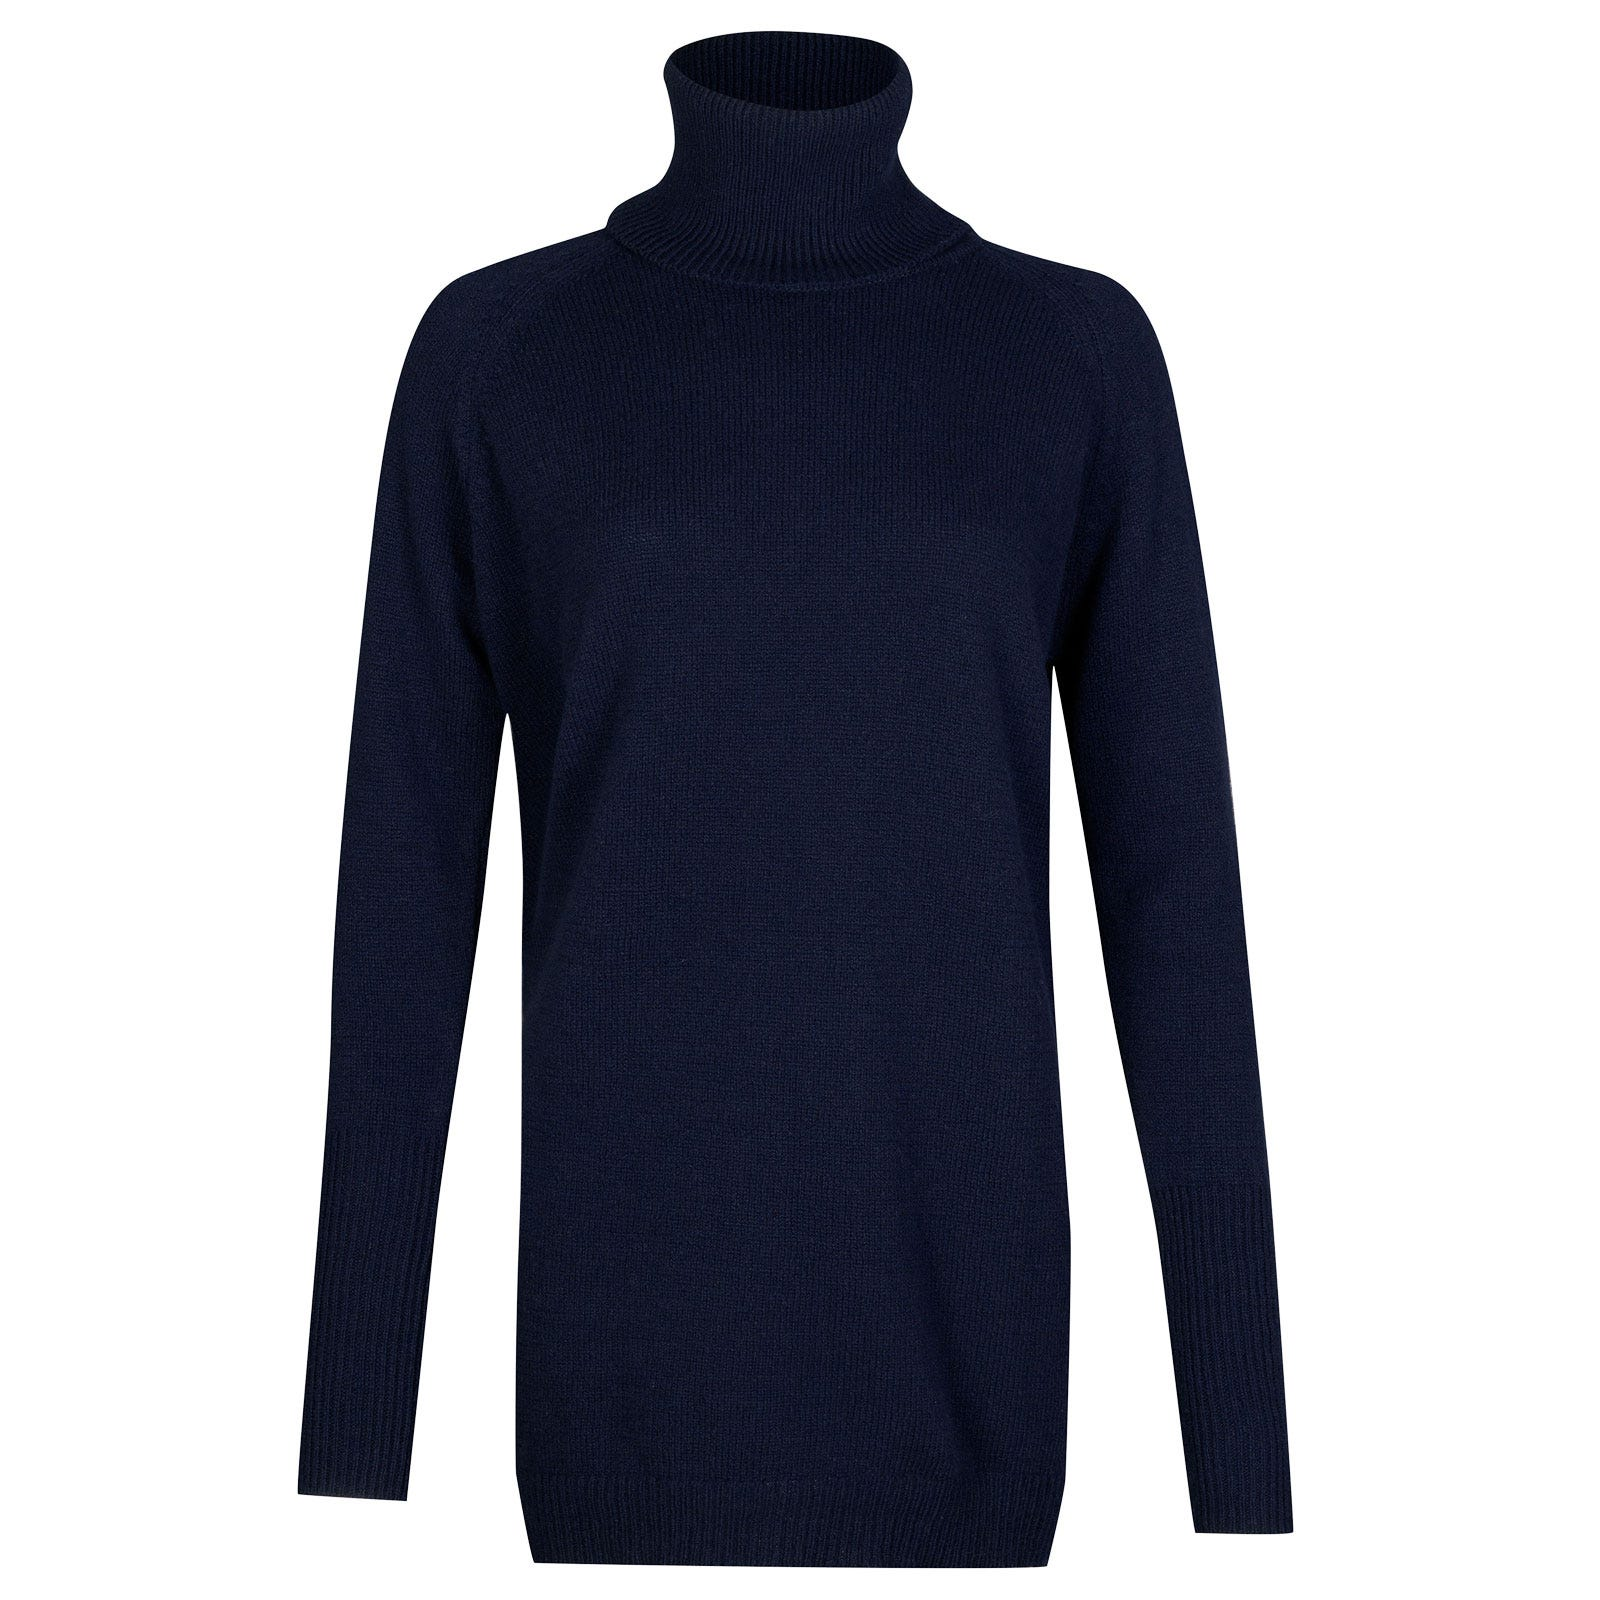 John Smedley beale Merino Wool & Cashmere Sweater in Midnight-XL